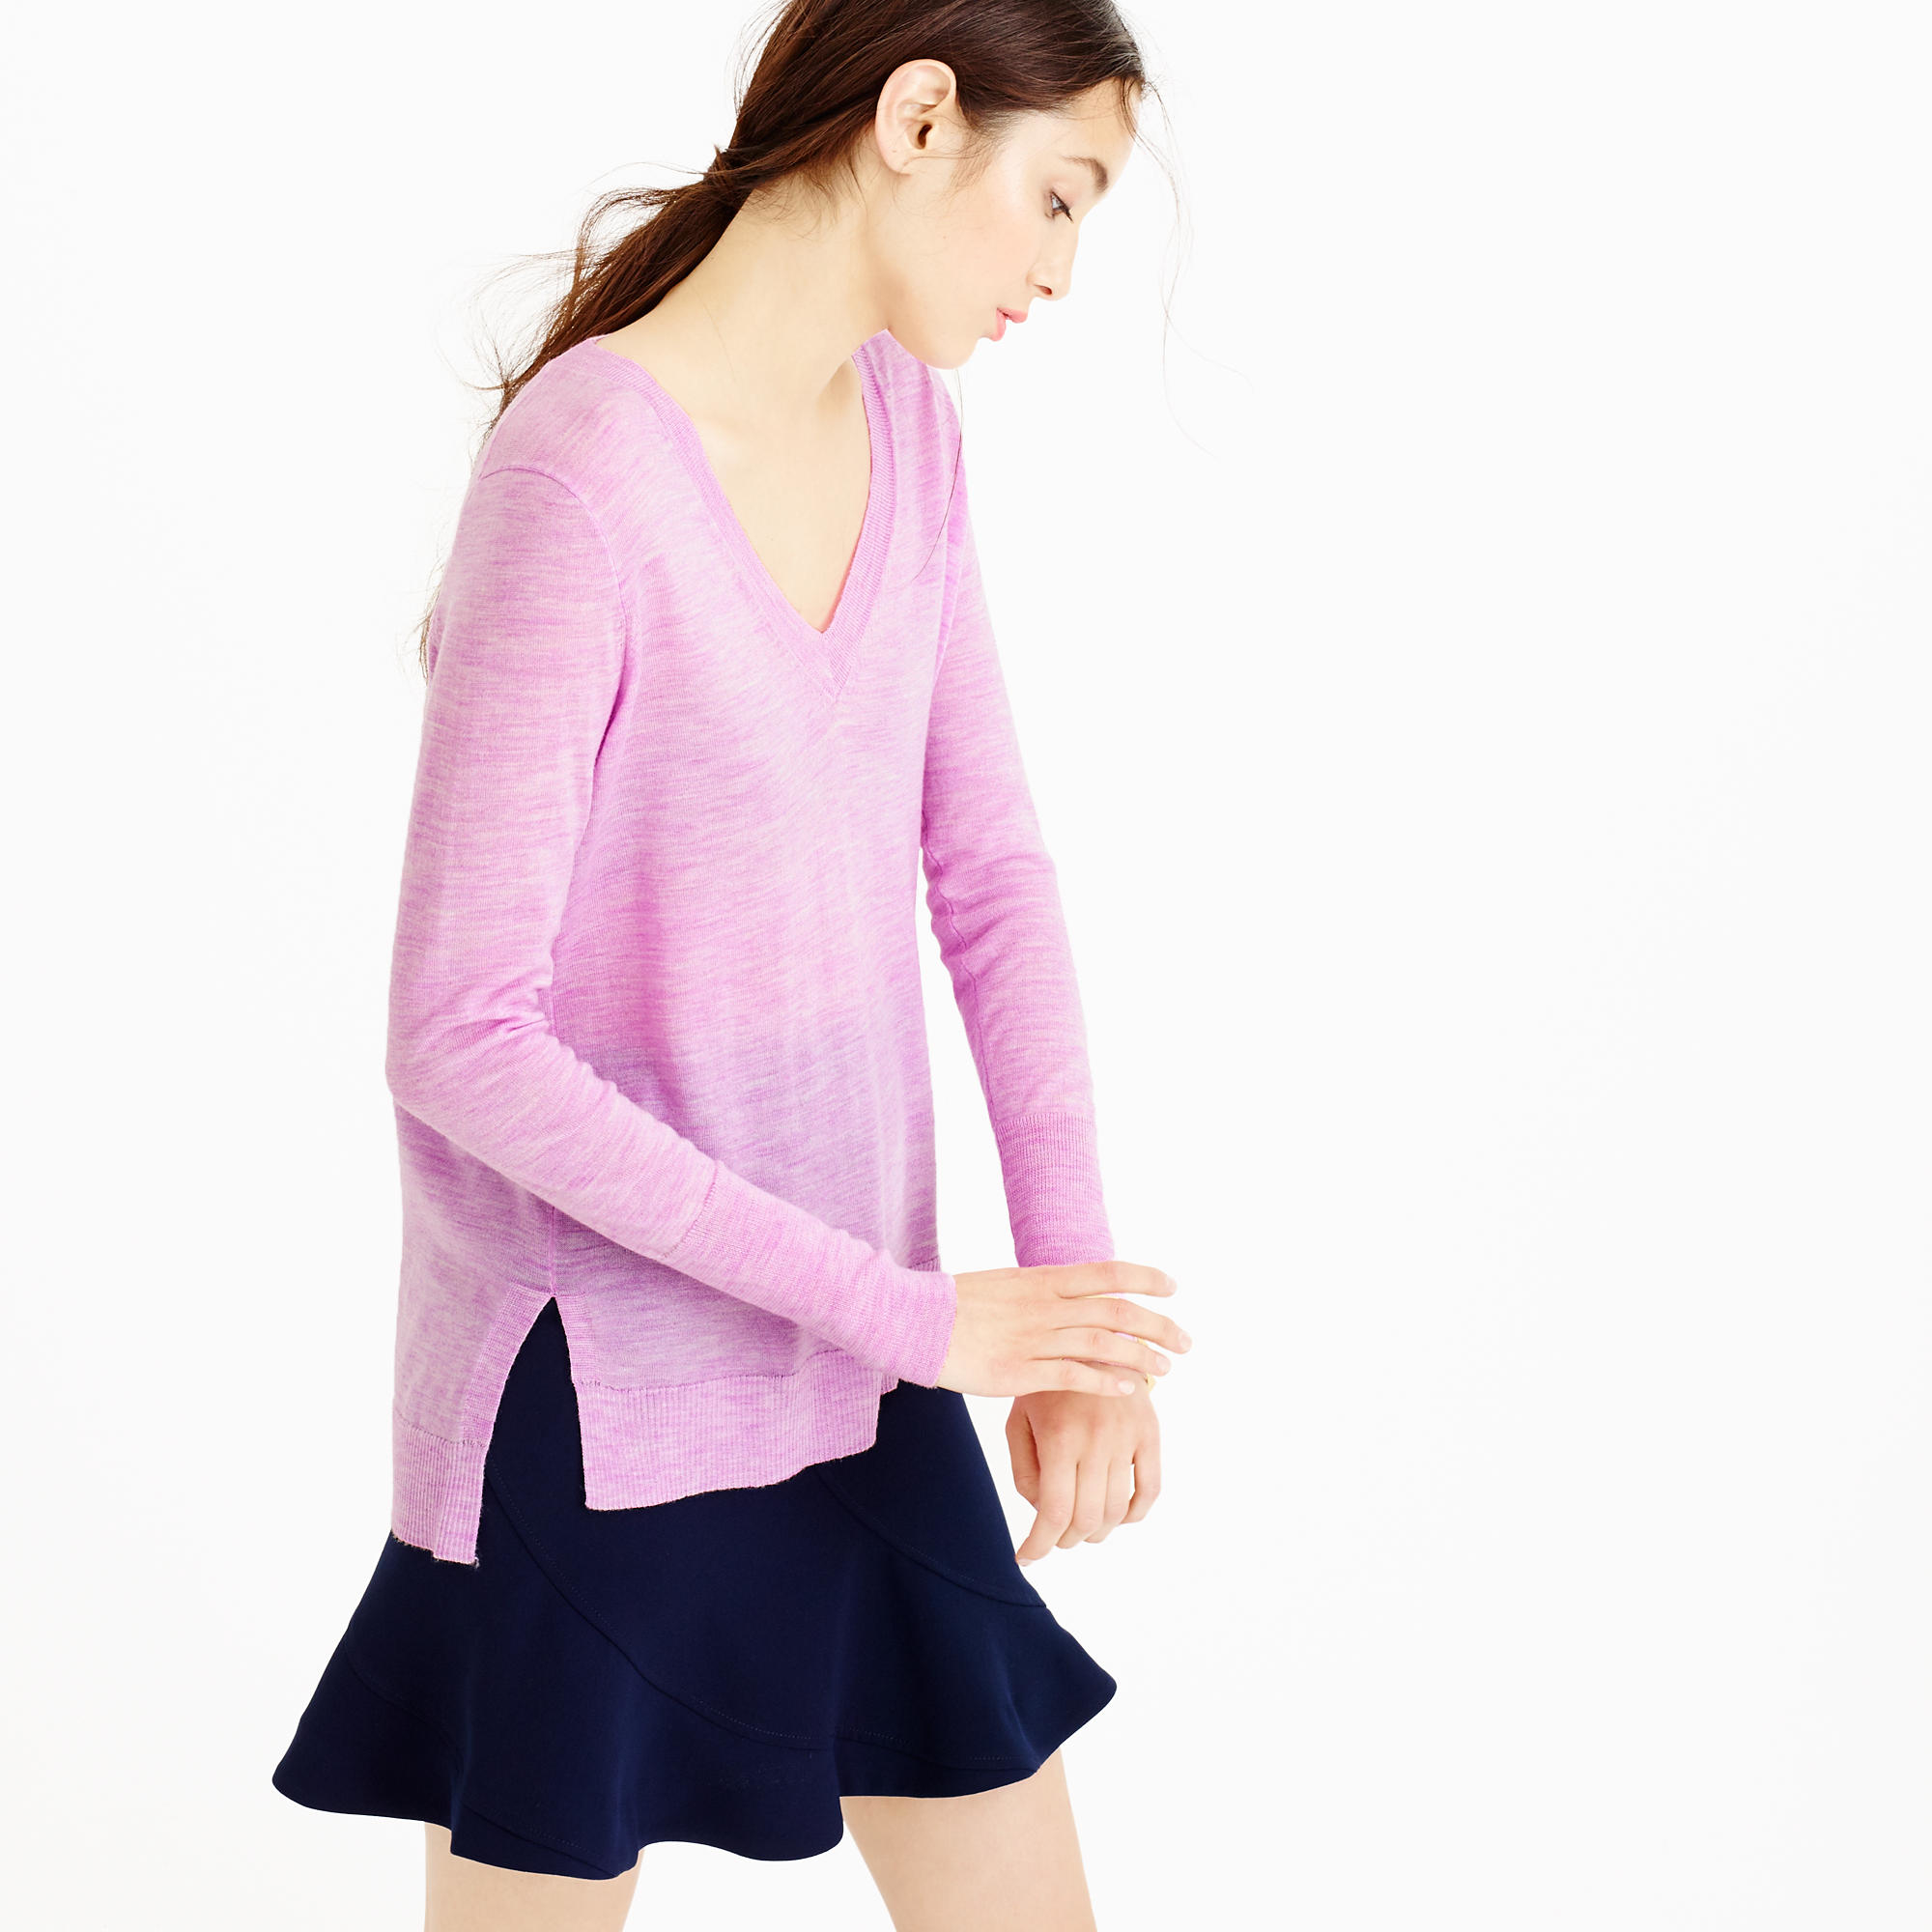 J.crew Merino Wool V-neck Tunic Sweater in Pink | Lyst